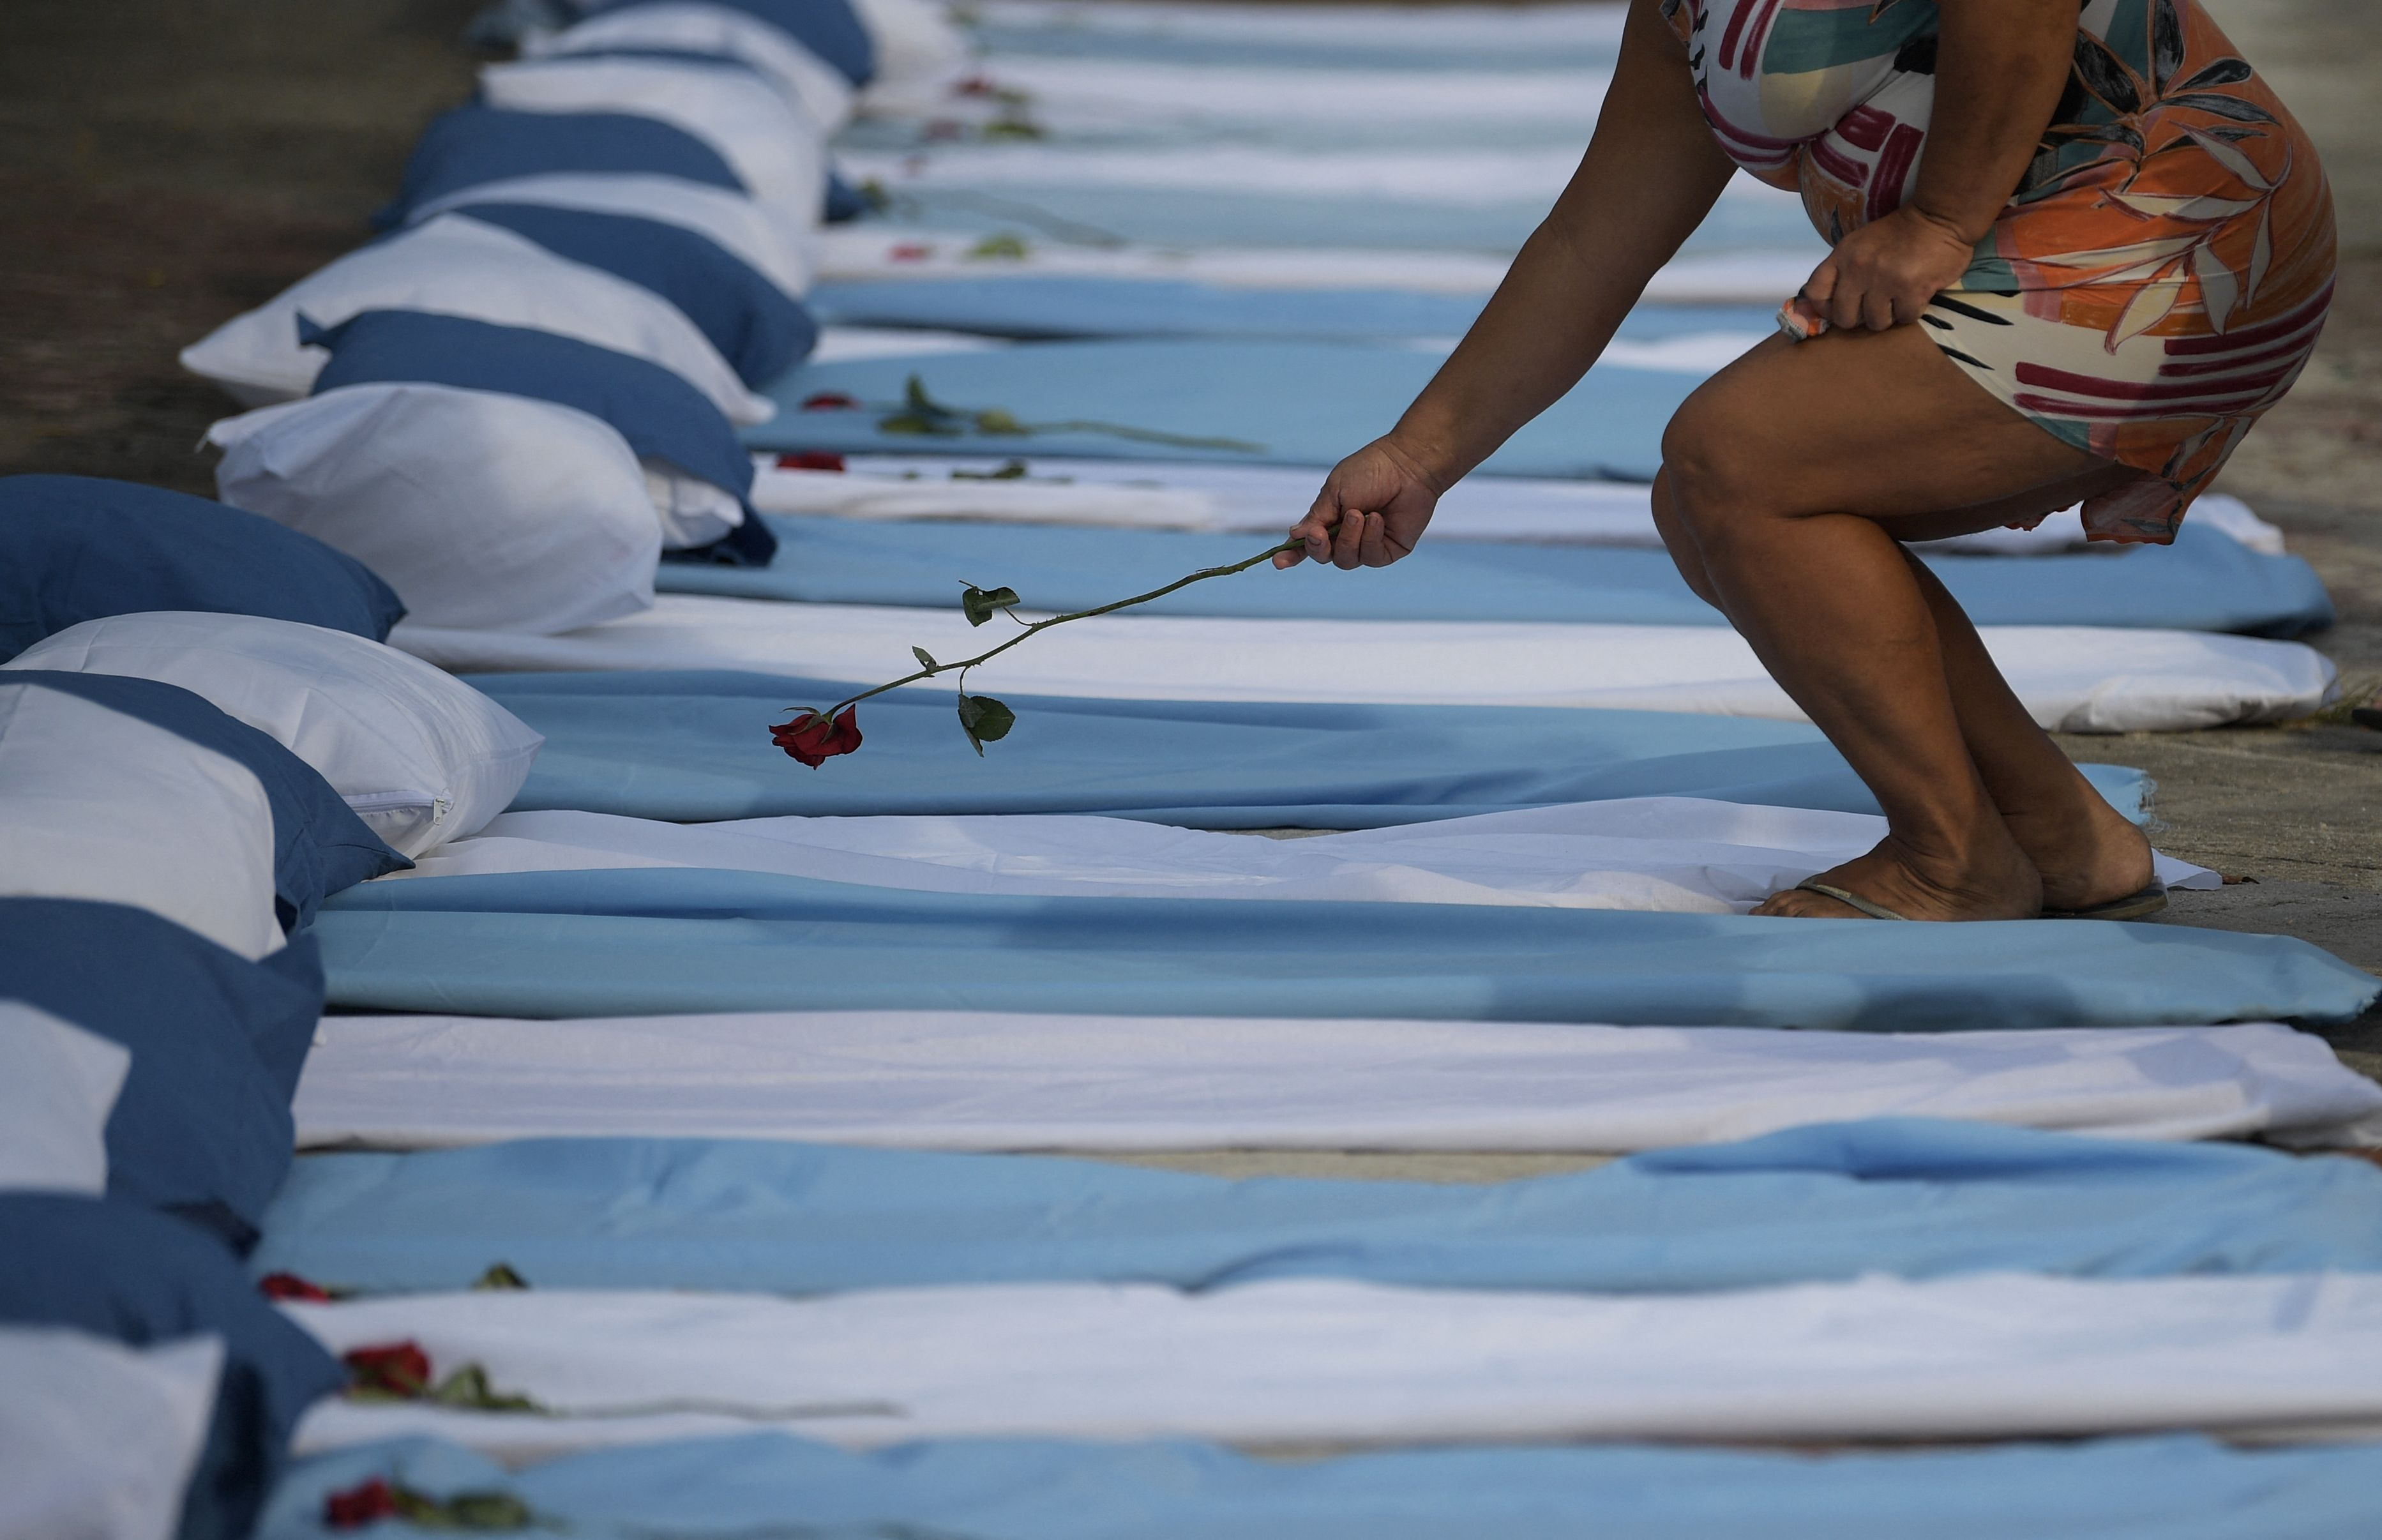 TOPSHOT - A woman lays a rose on top of a mattress symbolizing COVID-19 victims during a protest by the Rio de Paz human rights activist group outside a hospital in Rio de Janeiro, Brazil, on March 24, 2021. - The group were protesting against the rising figures of COVID-19 deaths in the country which saw more than 3000 people die in the last 24 hours. (Photo by CARL DE SOUZA / AFP) (Photo by CARL DE SOUZA/AFP via Getty Images)